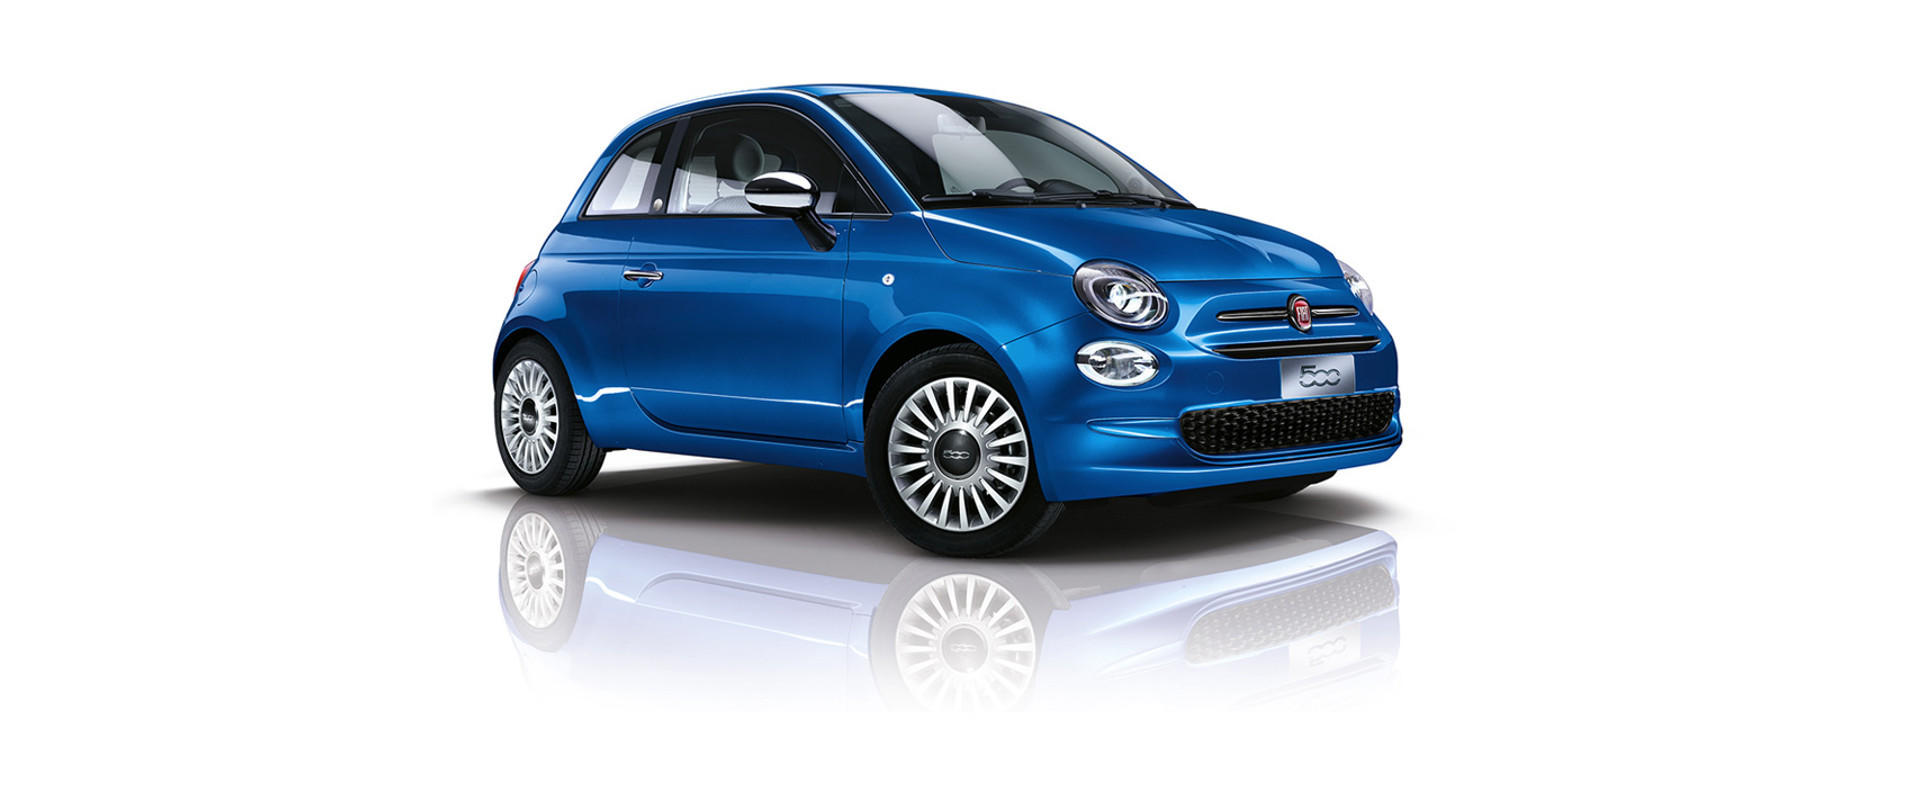 el fiat 500 mirror es un 500 desde euros con. Black Bedroom Furniture Sets. Home Design Ideas